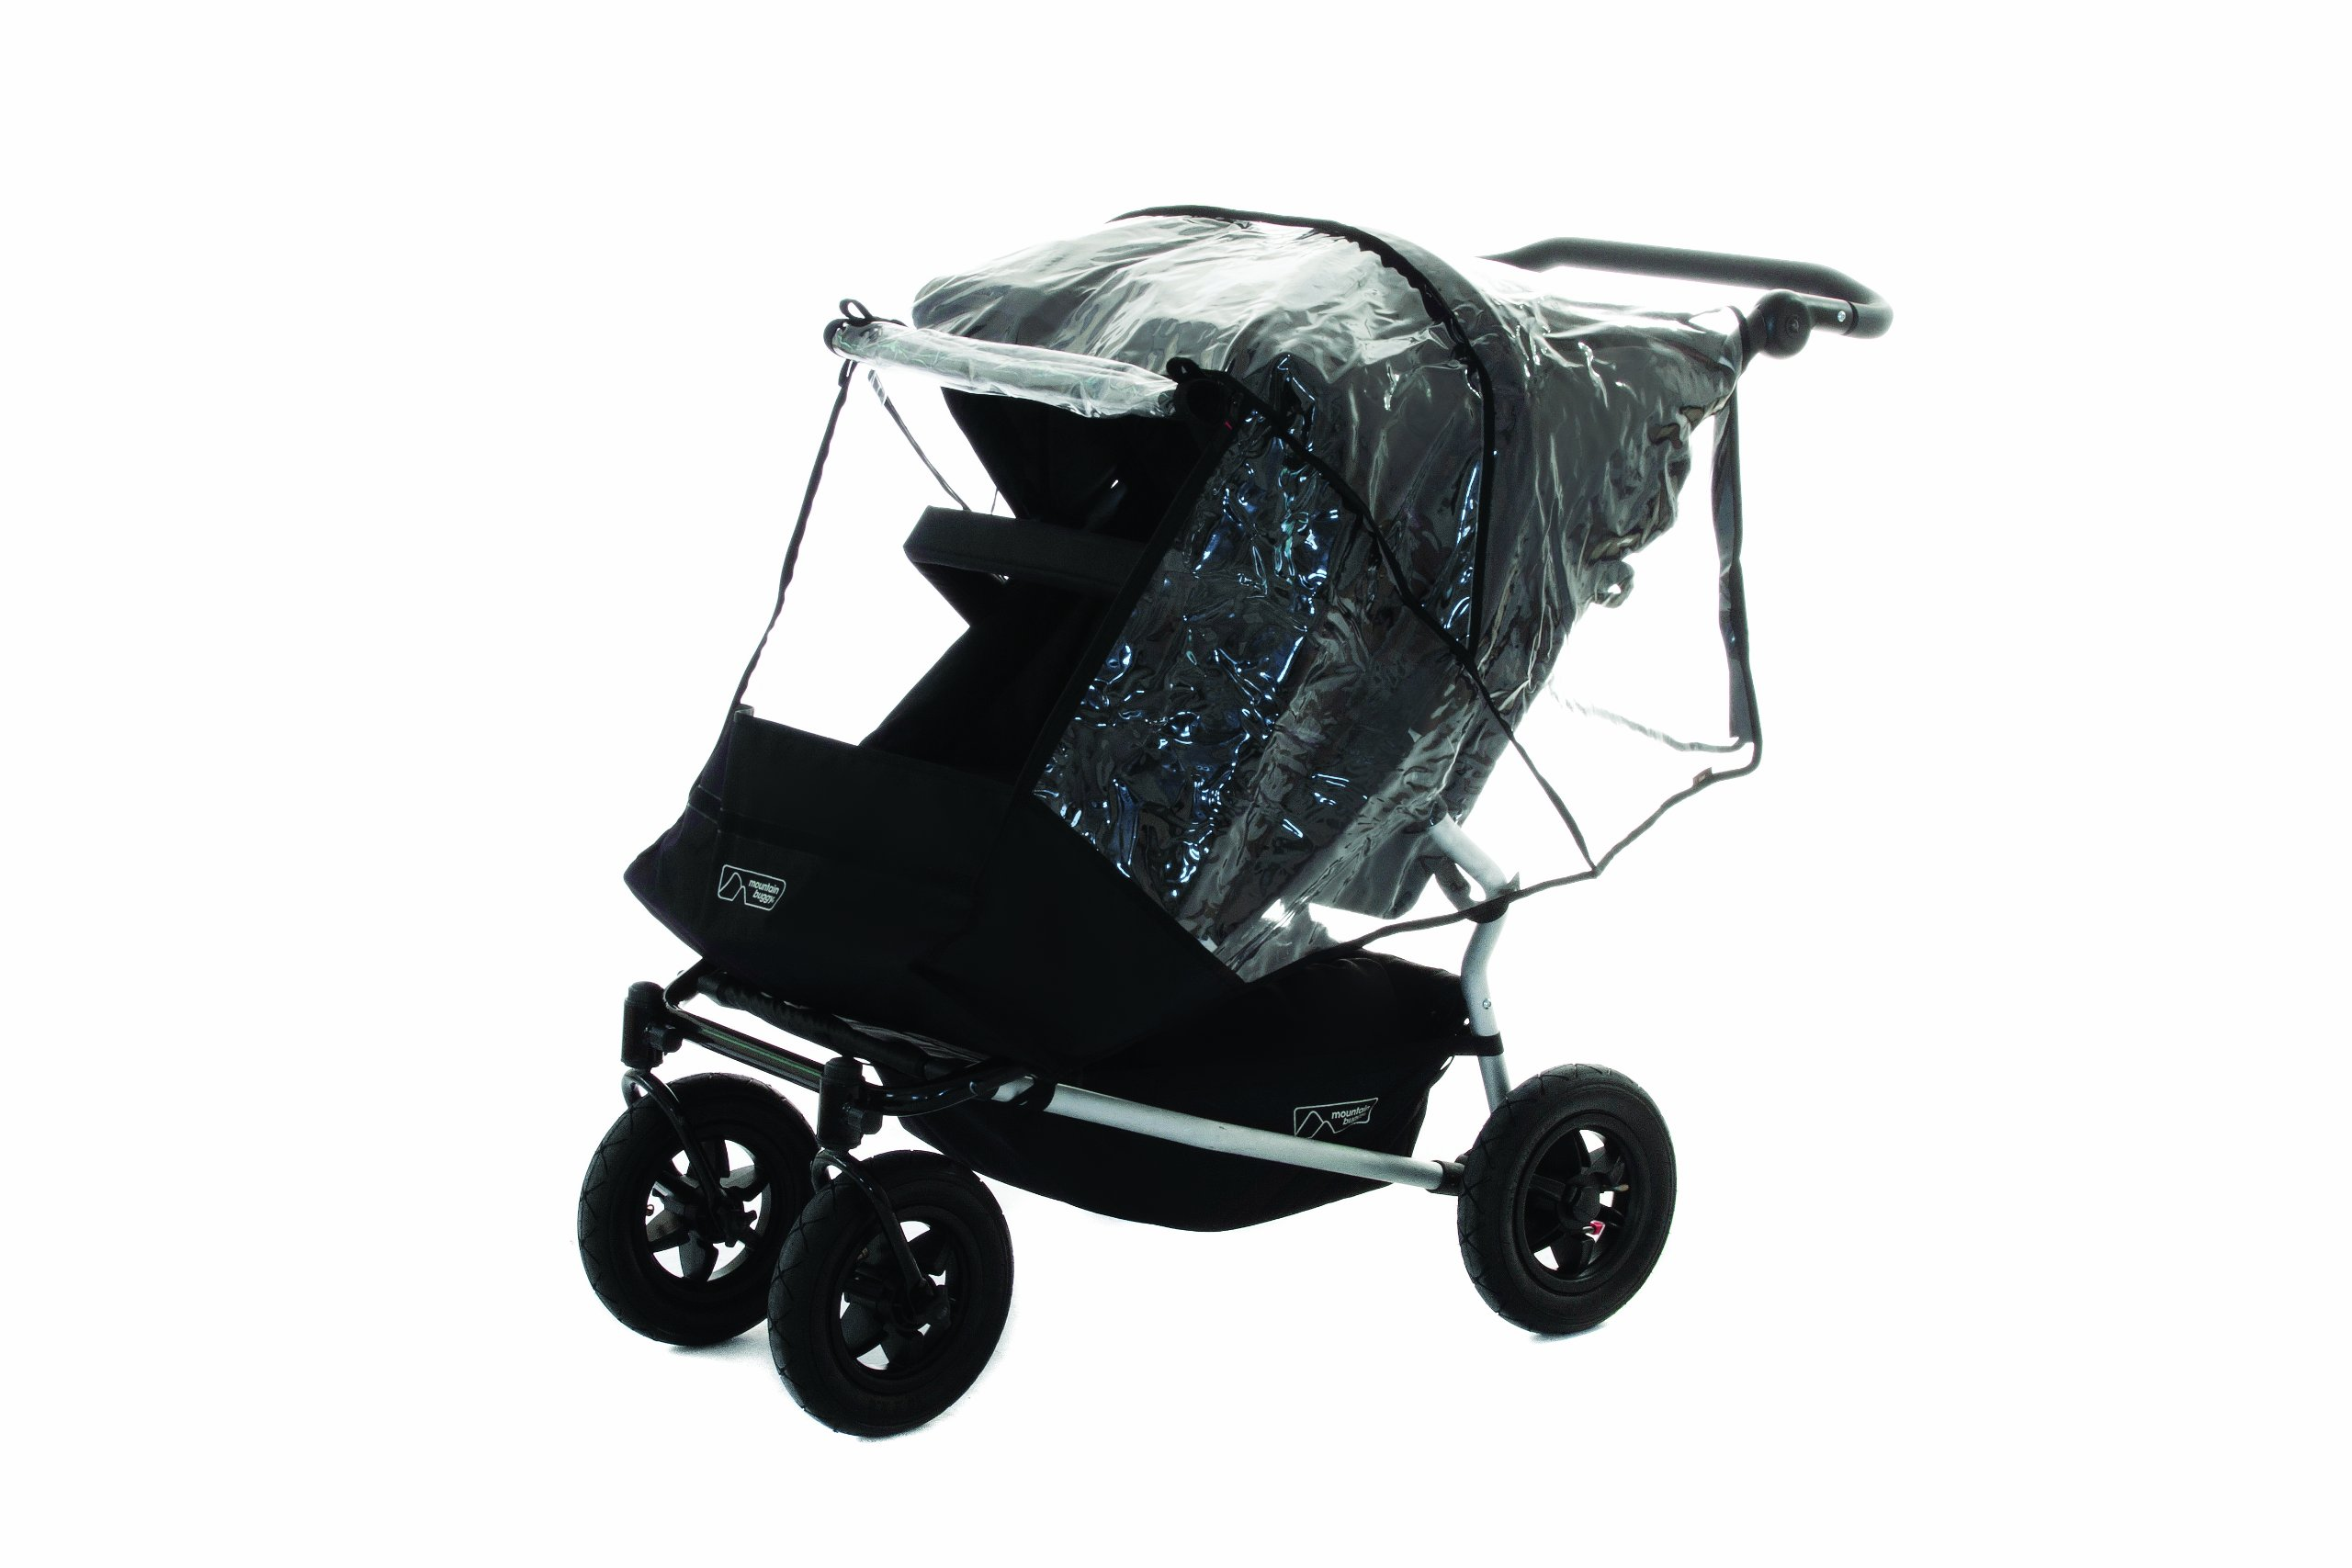 Mountain Buggy Duet 2016 Double Stroller, Black by Mountain Buggy (Image #15)